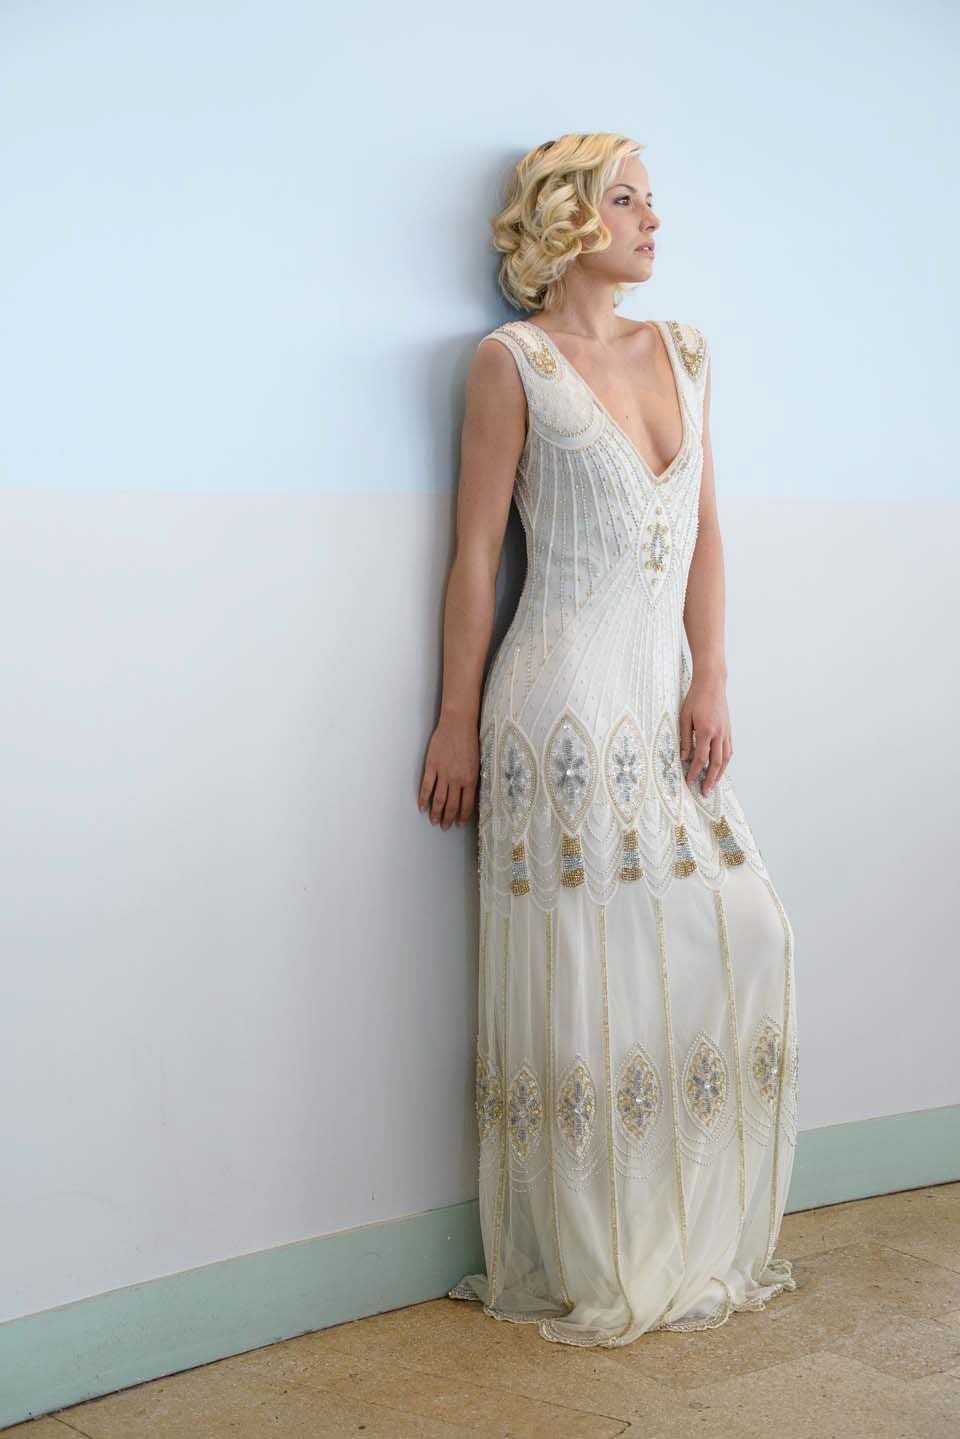 1930s style wedding dresses  Vicky Rowe A Debut Collection of s and s Inspired Heirloom